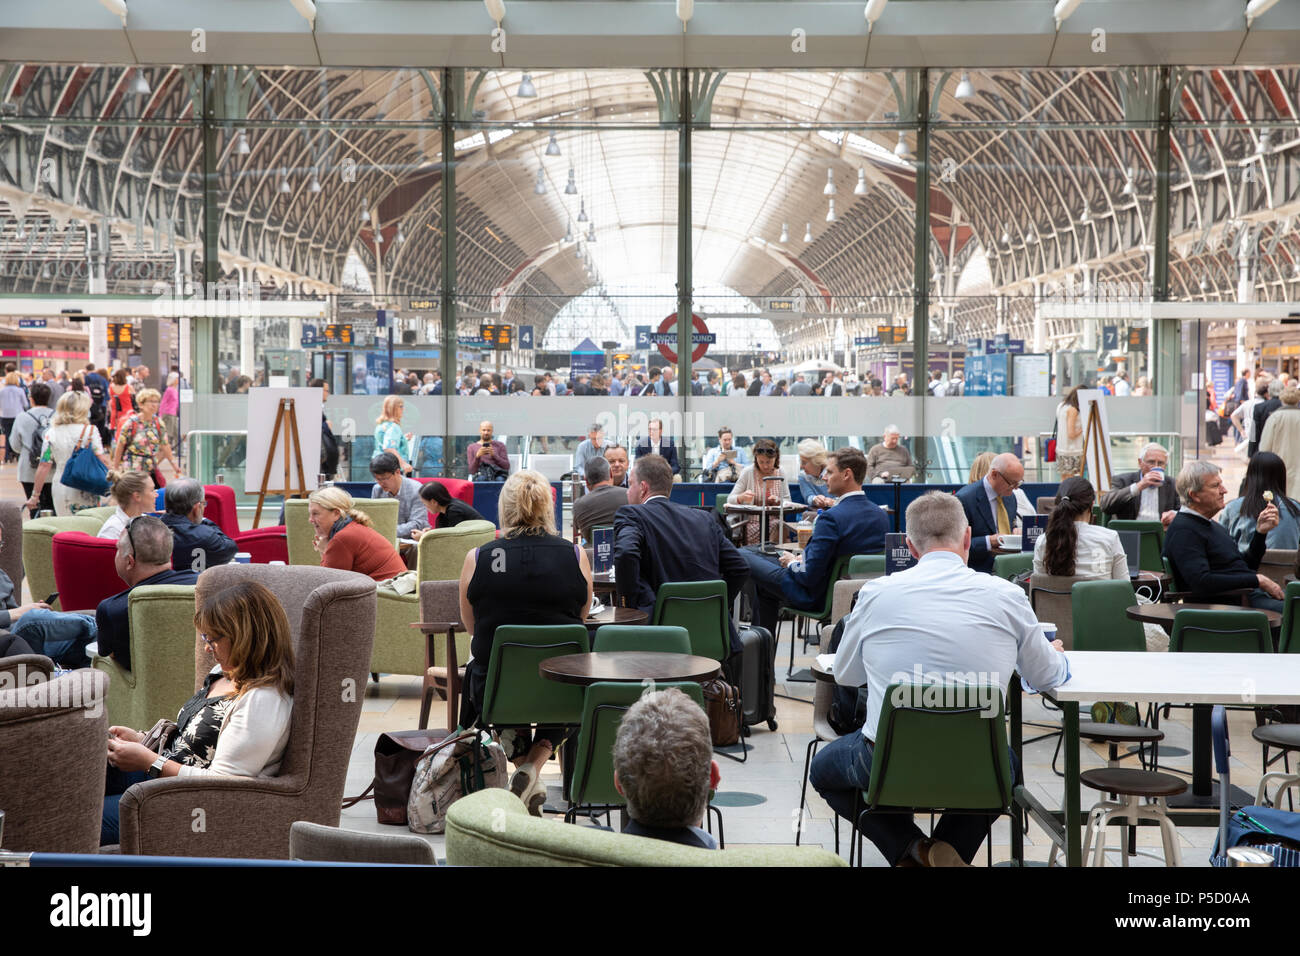 Caffe Ritazza in der Paddington Station, London. Stockbild